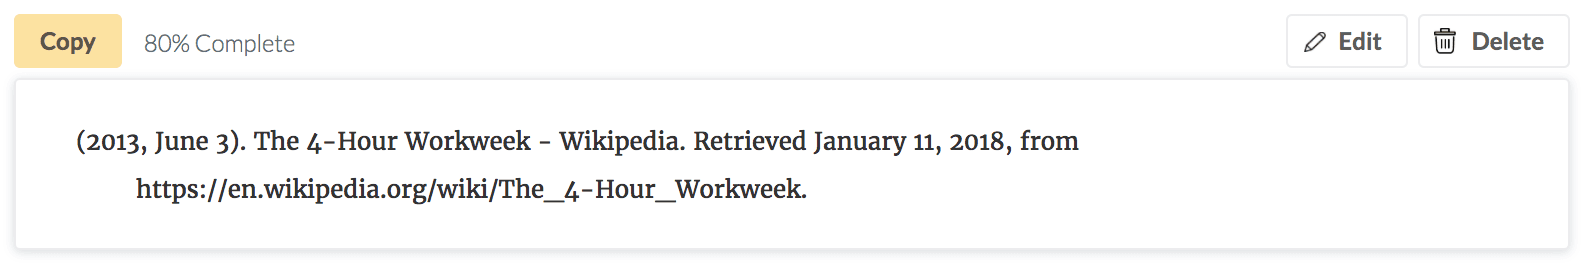 (2013, June 3). The 4-Hour Workweek - Wikipedia. Retrieved January 11, 2018, from https://en.wikipedia.org/wiki/The_4-Hour_Workweek.